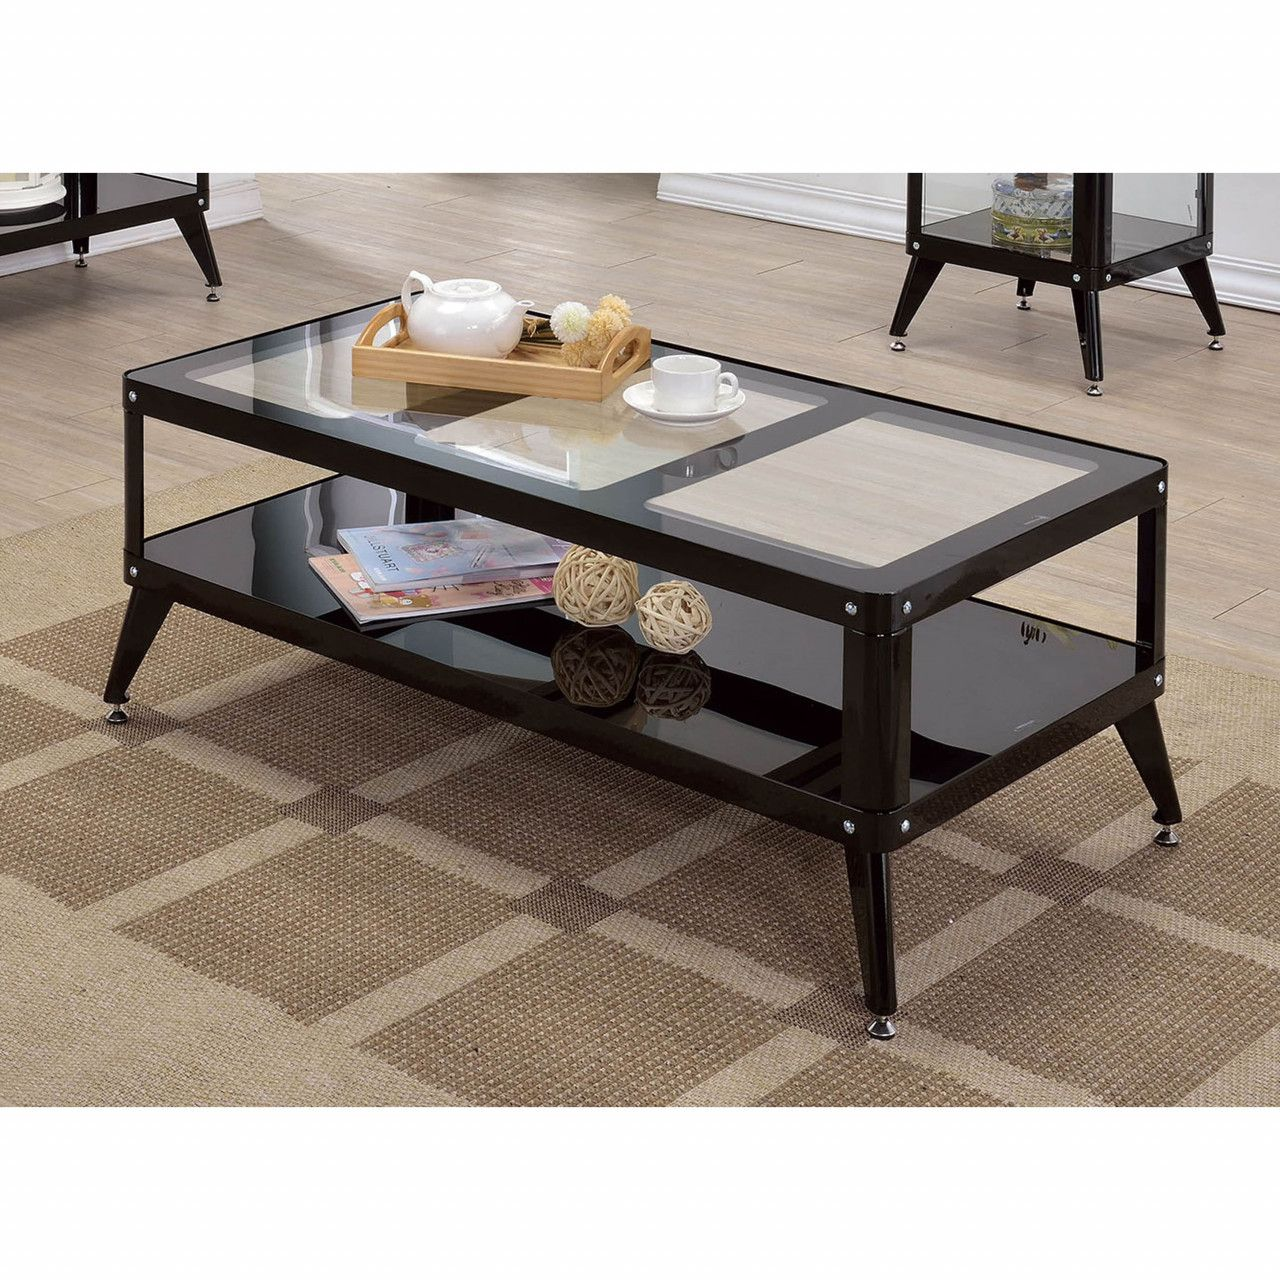 201 Unique Pier One Imports Coffee Table 2017 Metal Accent Table